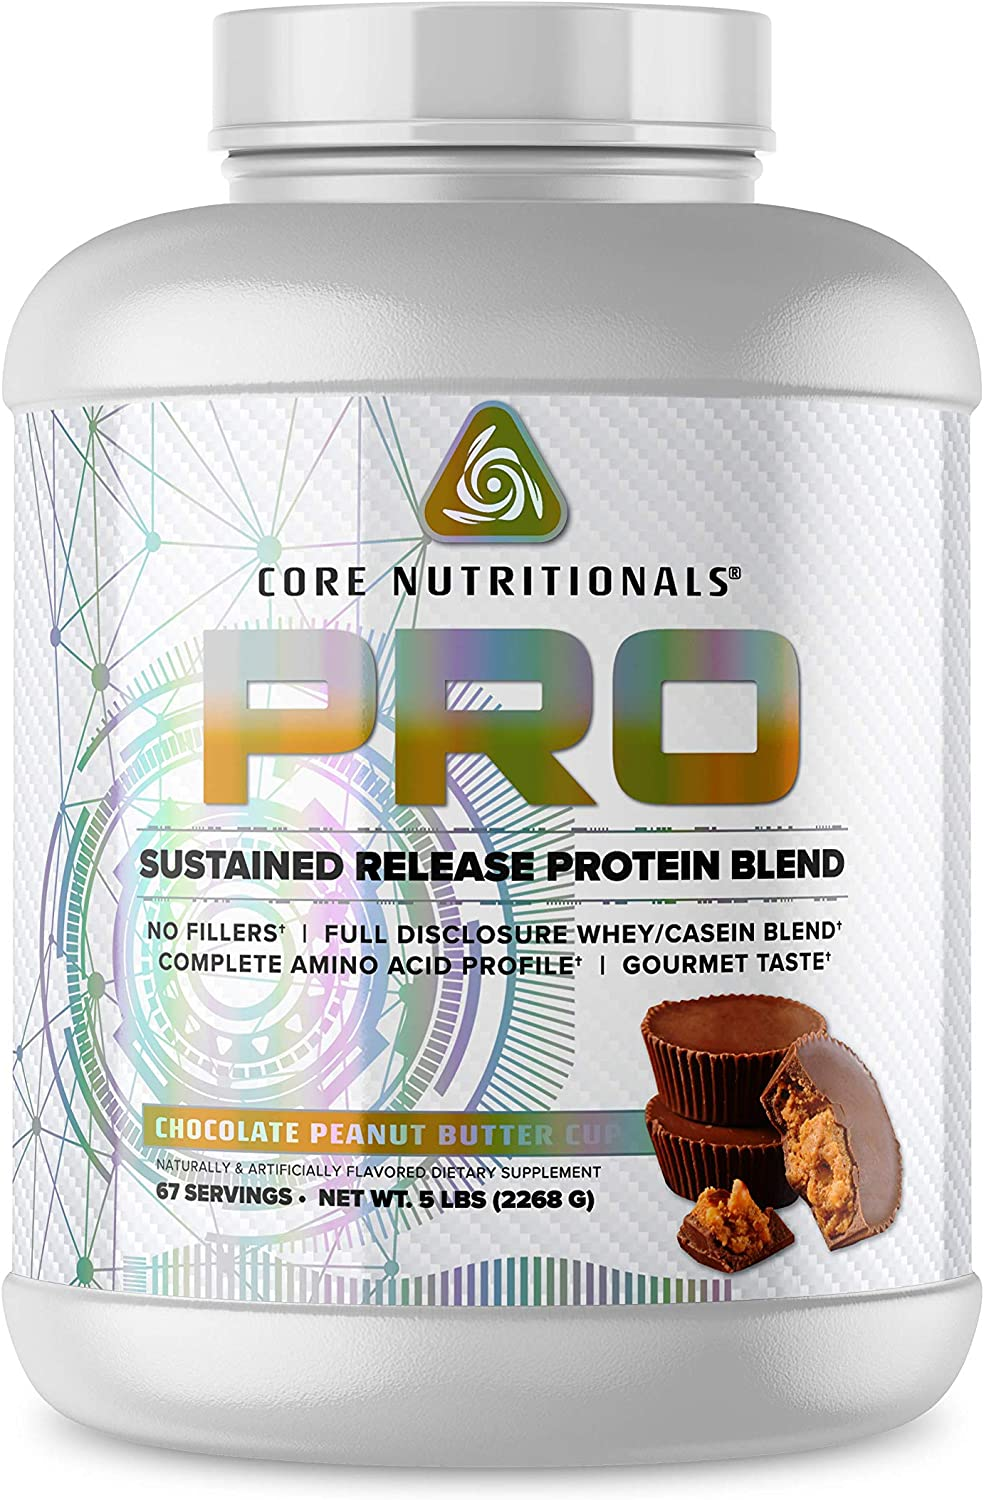 Core Import Nutritionals Pro Sustained Regular discount Blend Release Protein Digestive